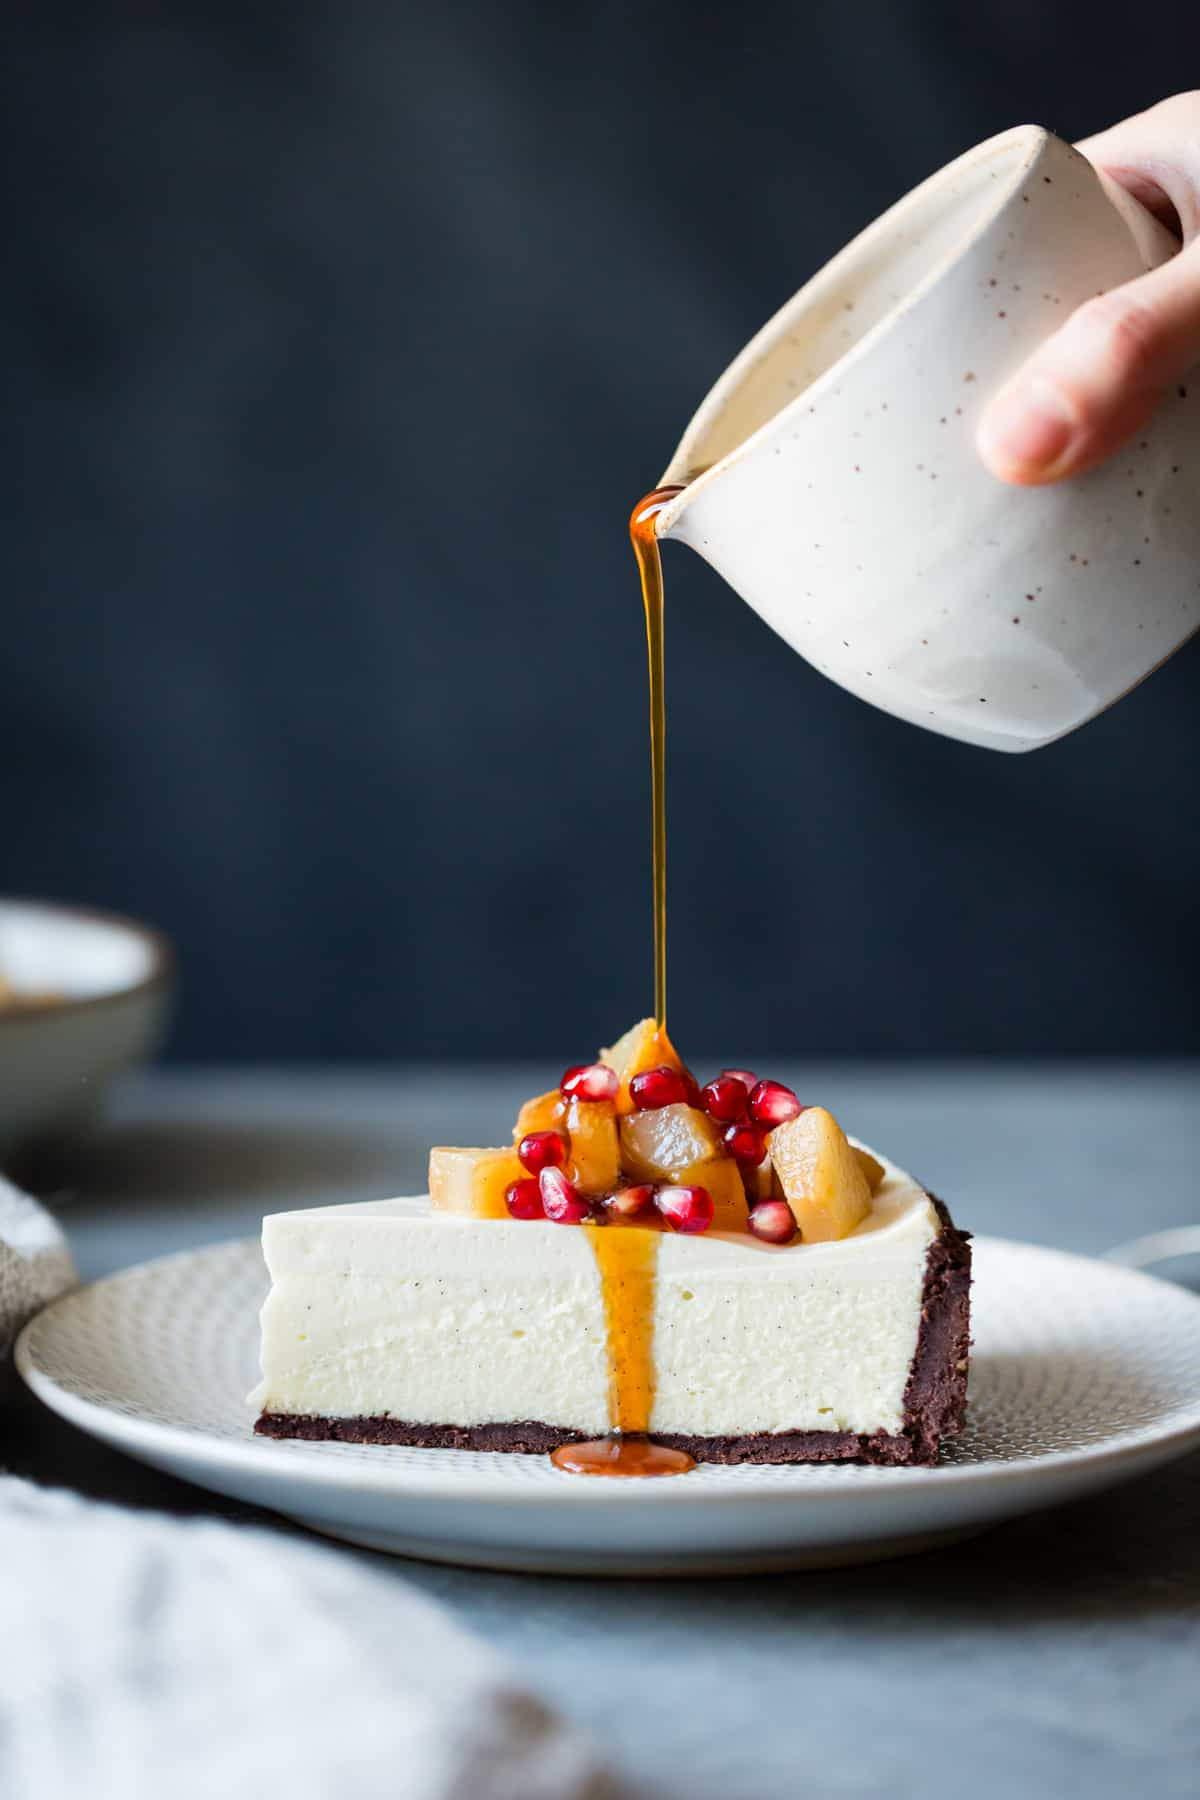 Kitchenaid Stand Mixer Recipes >> Chocolate Crusted Chèvre Cheesecake with Earl Grey Poached Pears & Pomegranate {gluten-free